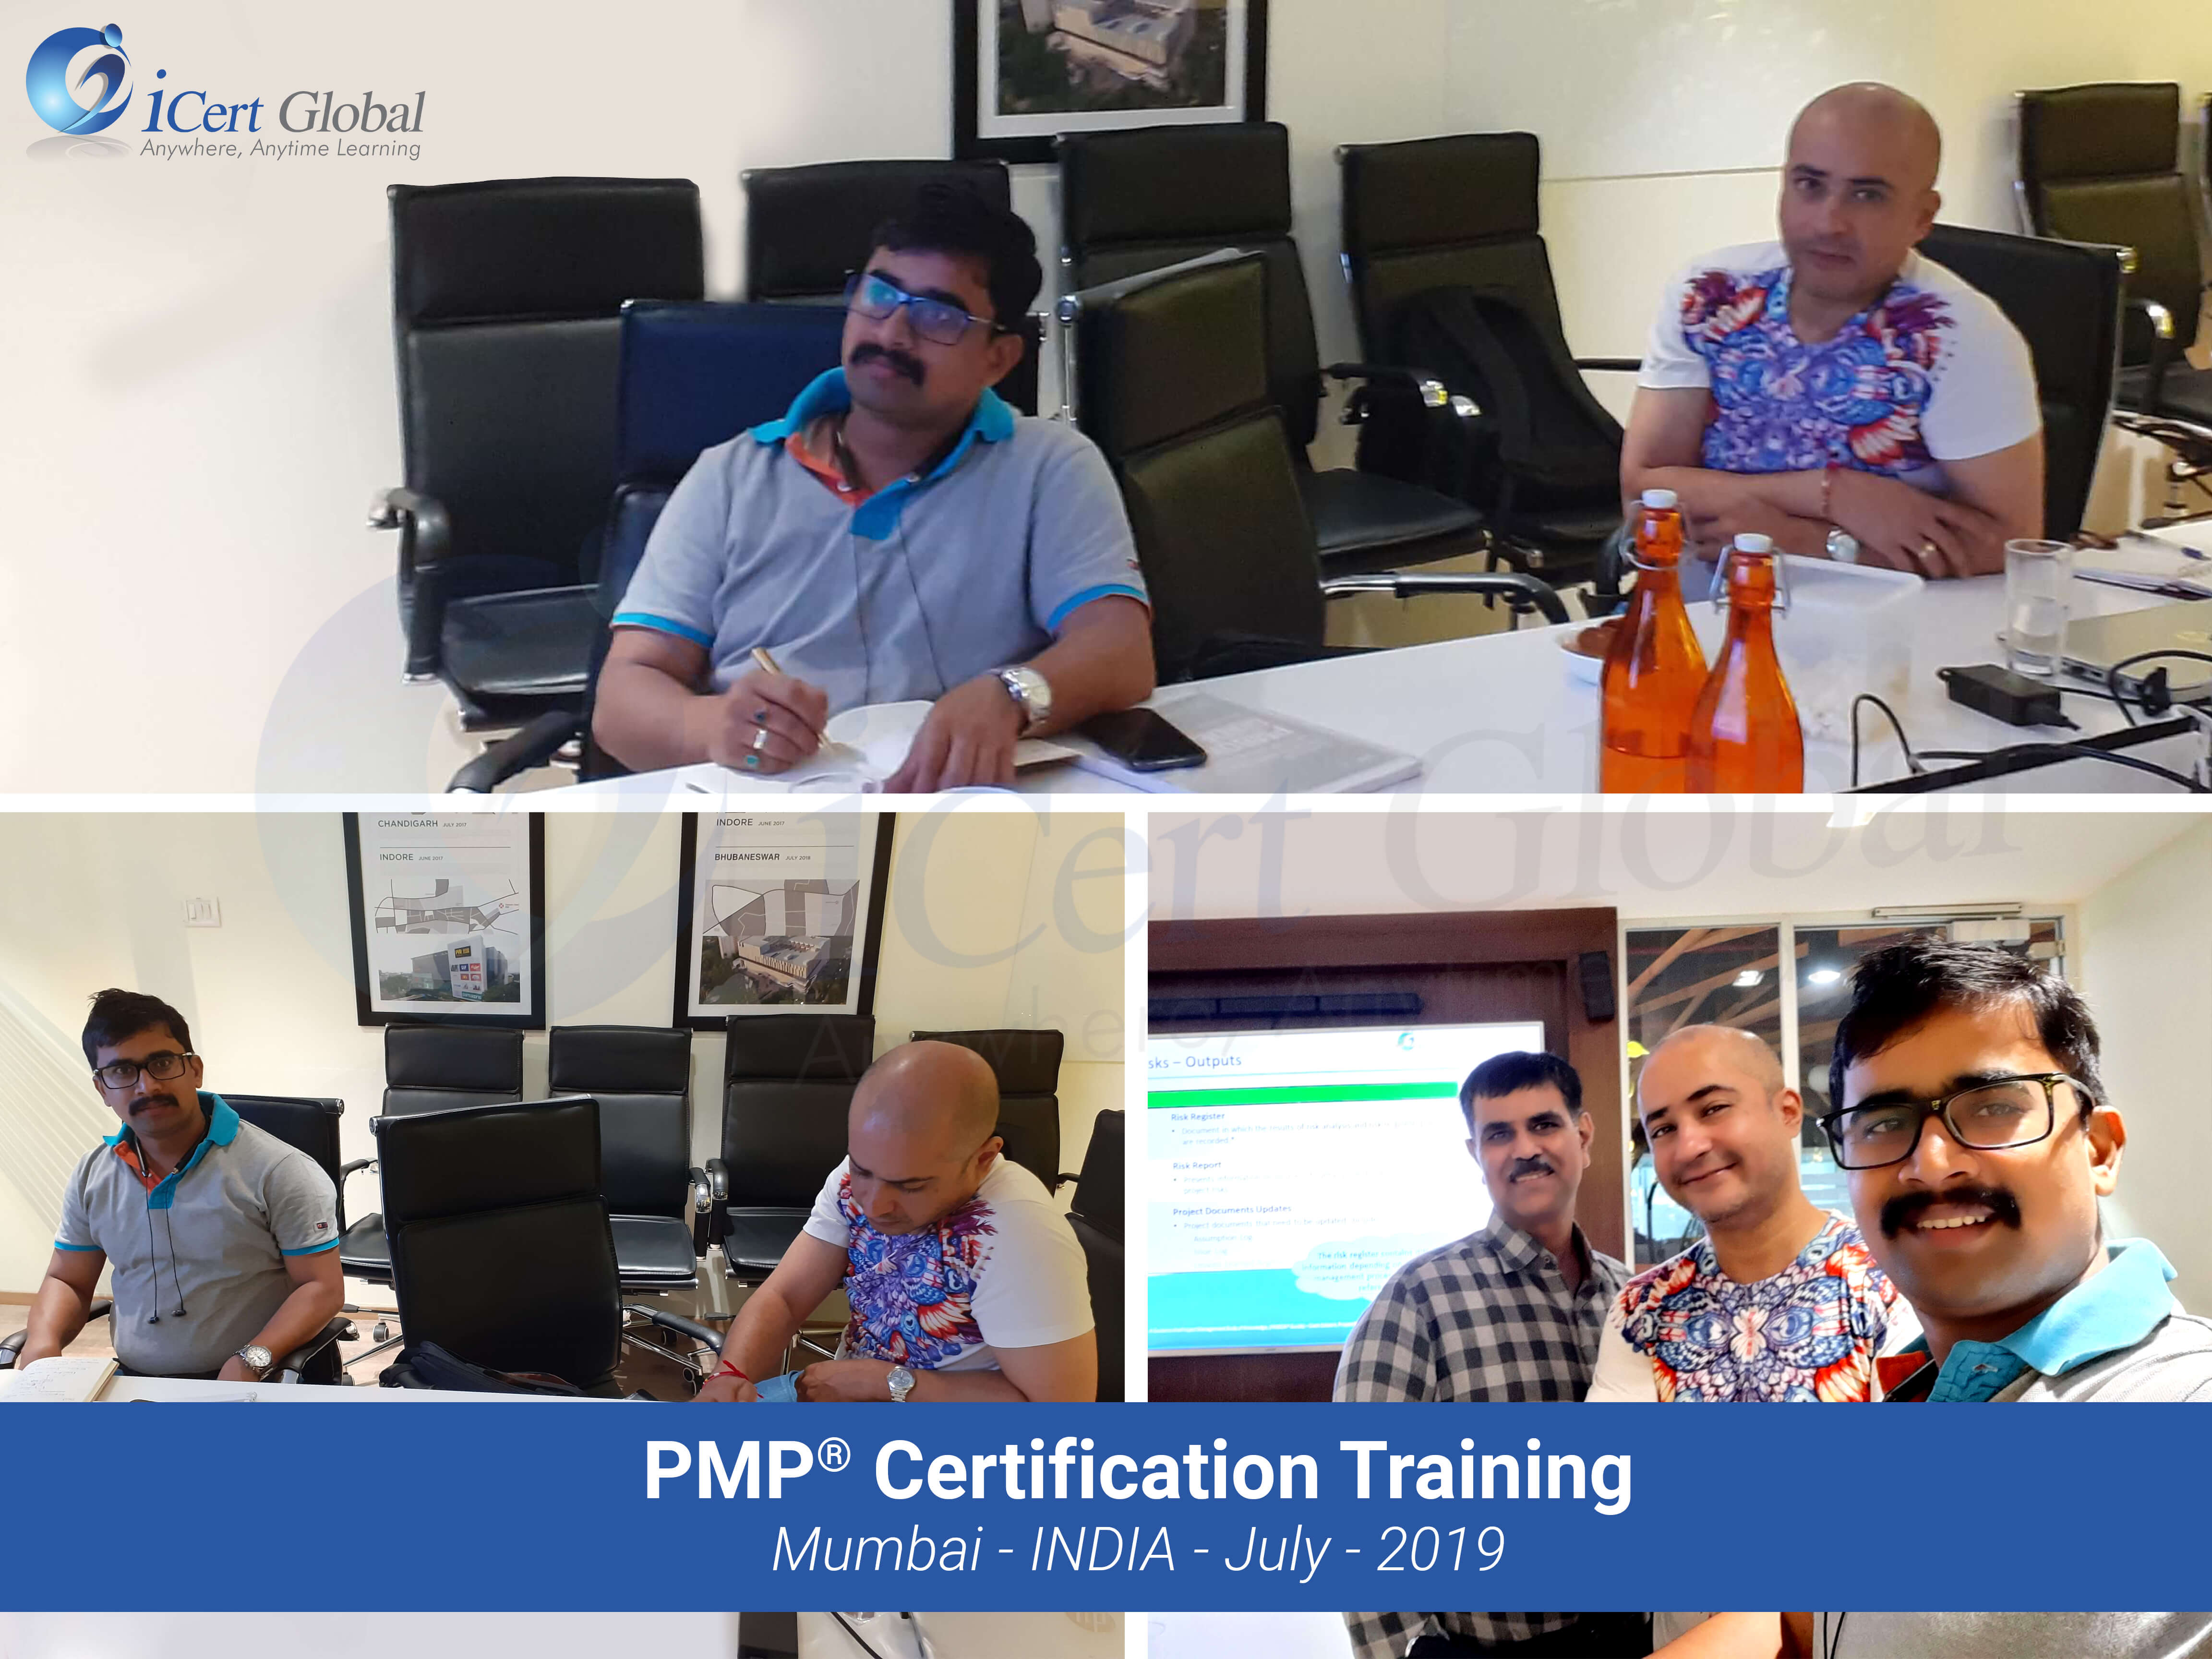 PMP Exam Prep Certification Training Classroom Course in Mumbai, India in July 2019